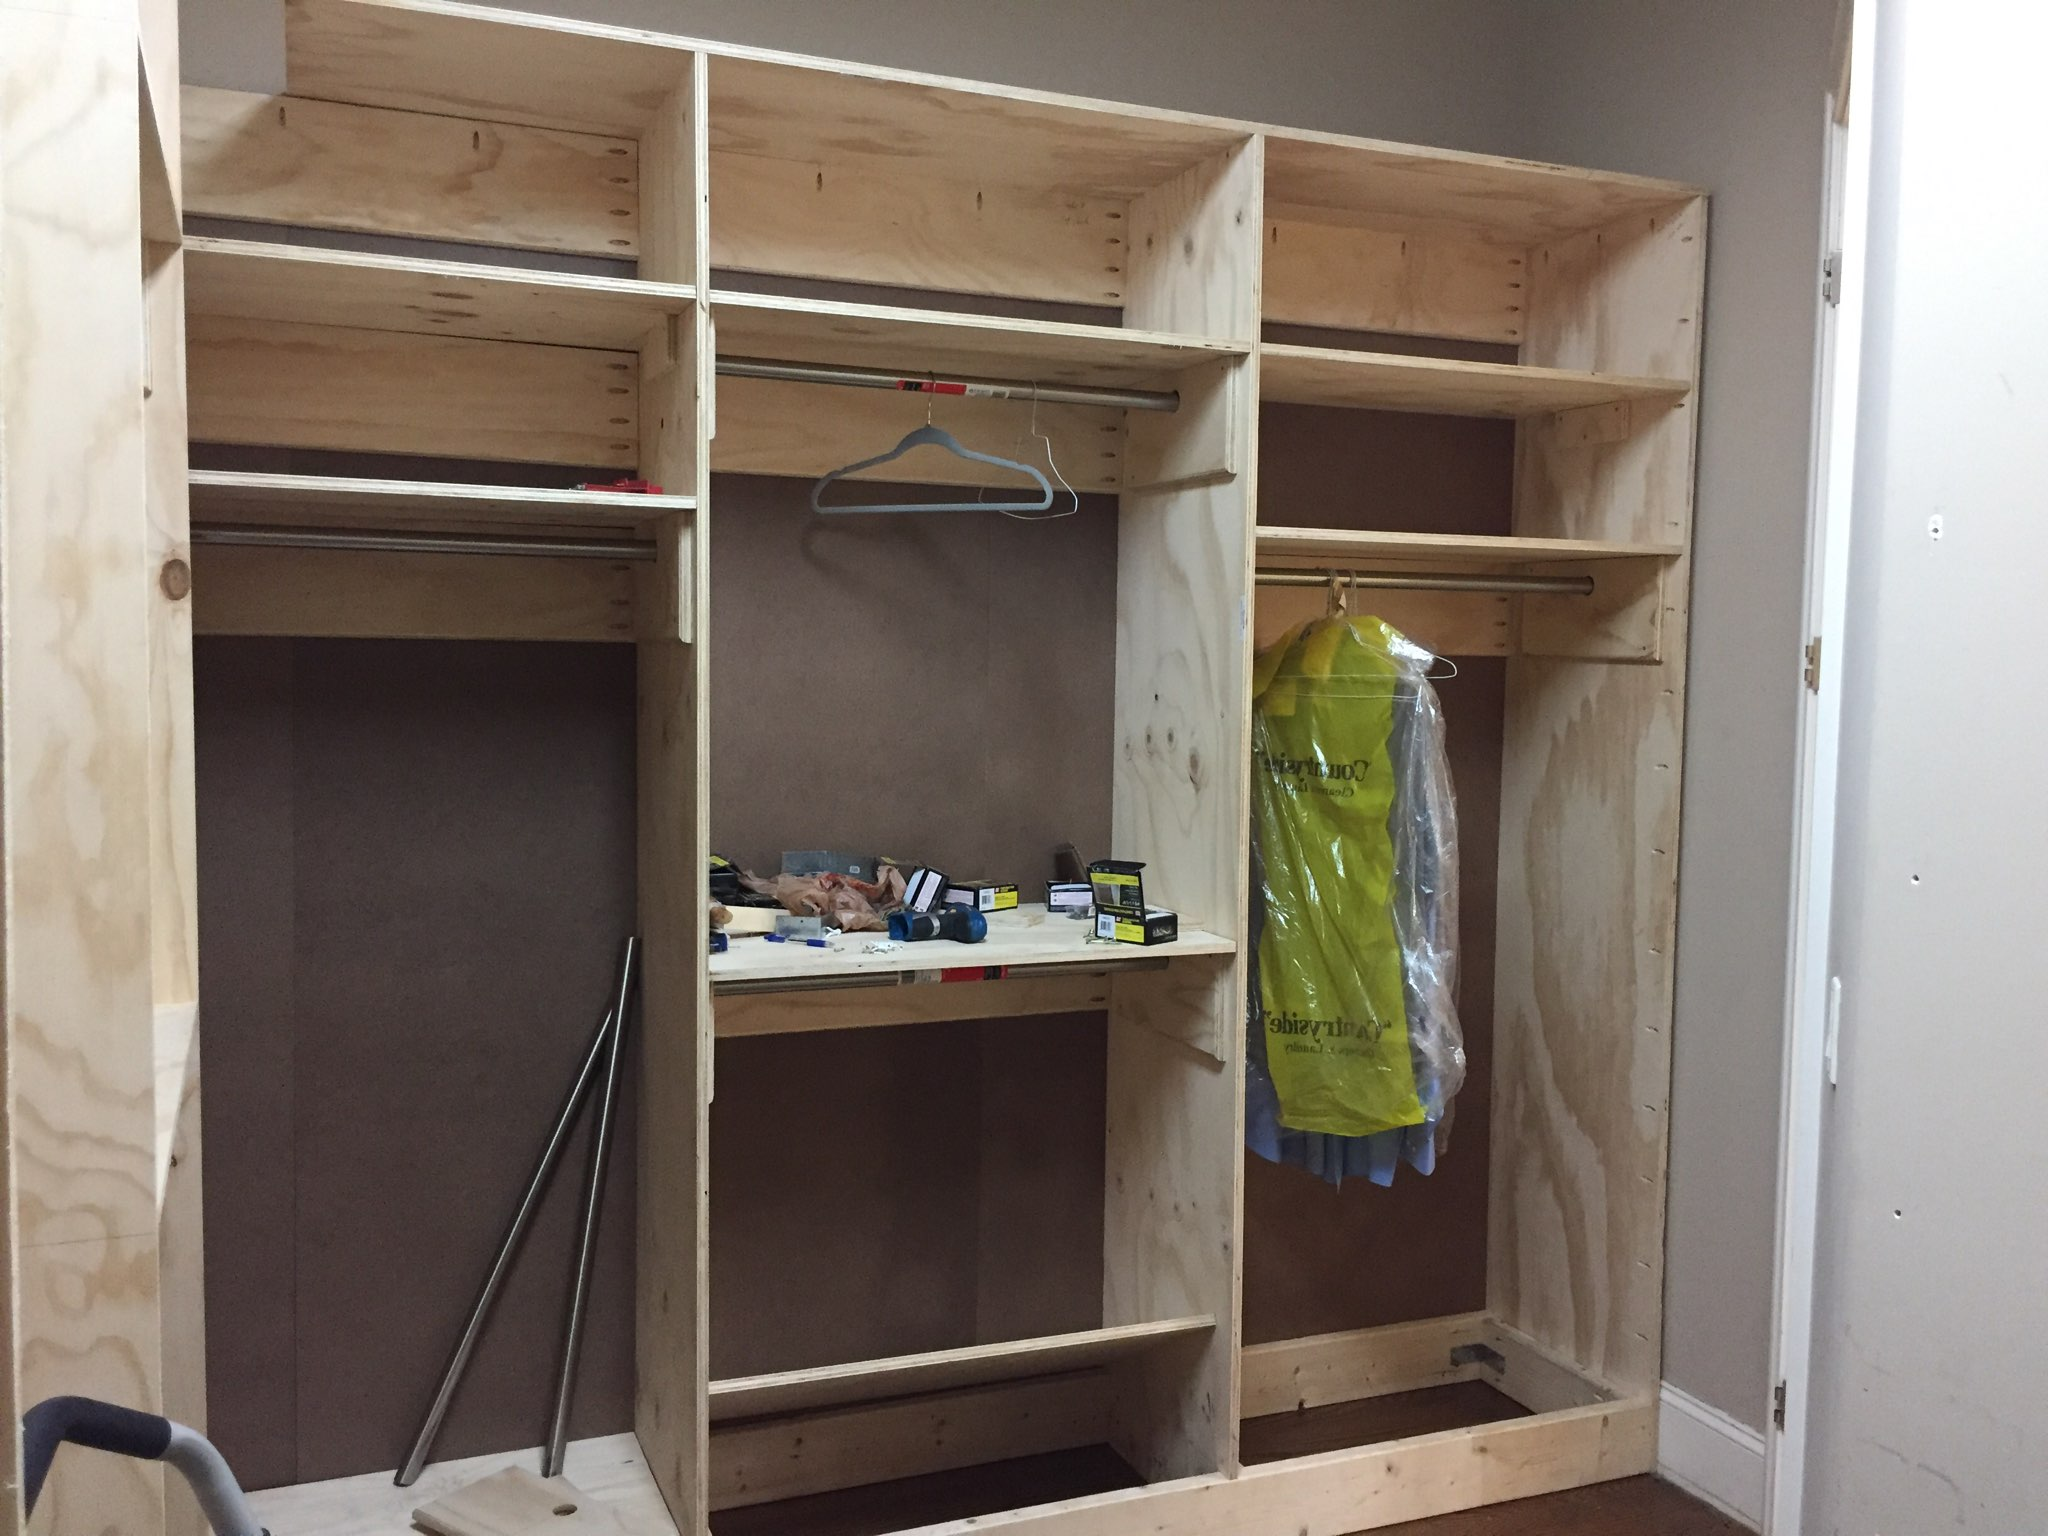 Picture of one of four sections of the walk-in closet. Size of this section is 9ft x 8ft (LxH), i.e., excluding a 2ft tall compartment (not shown) that fits at the top.